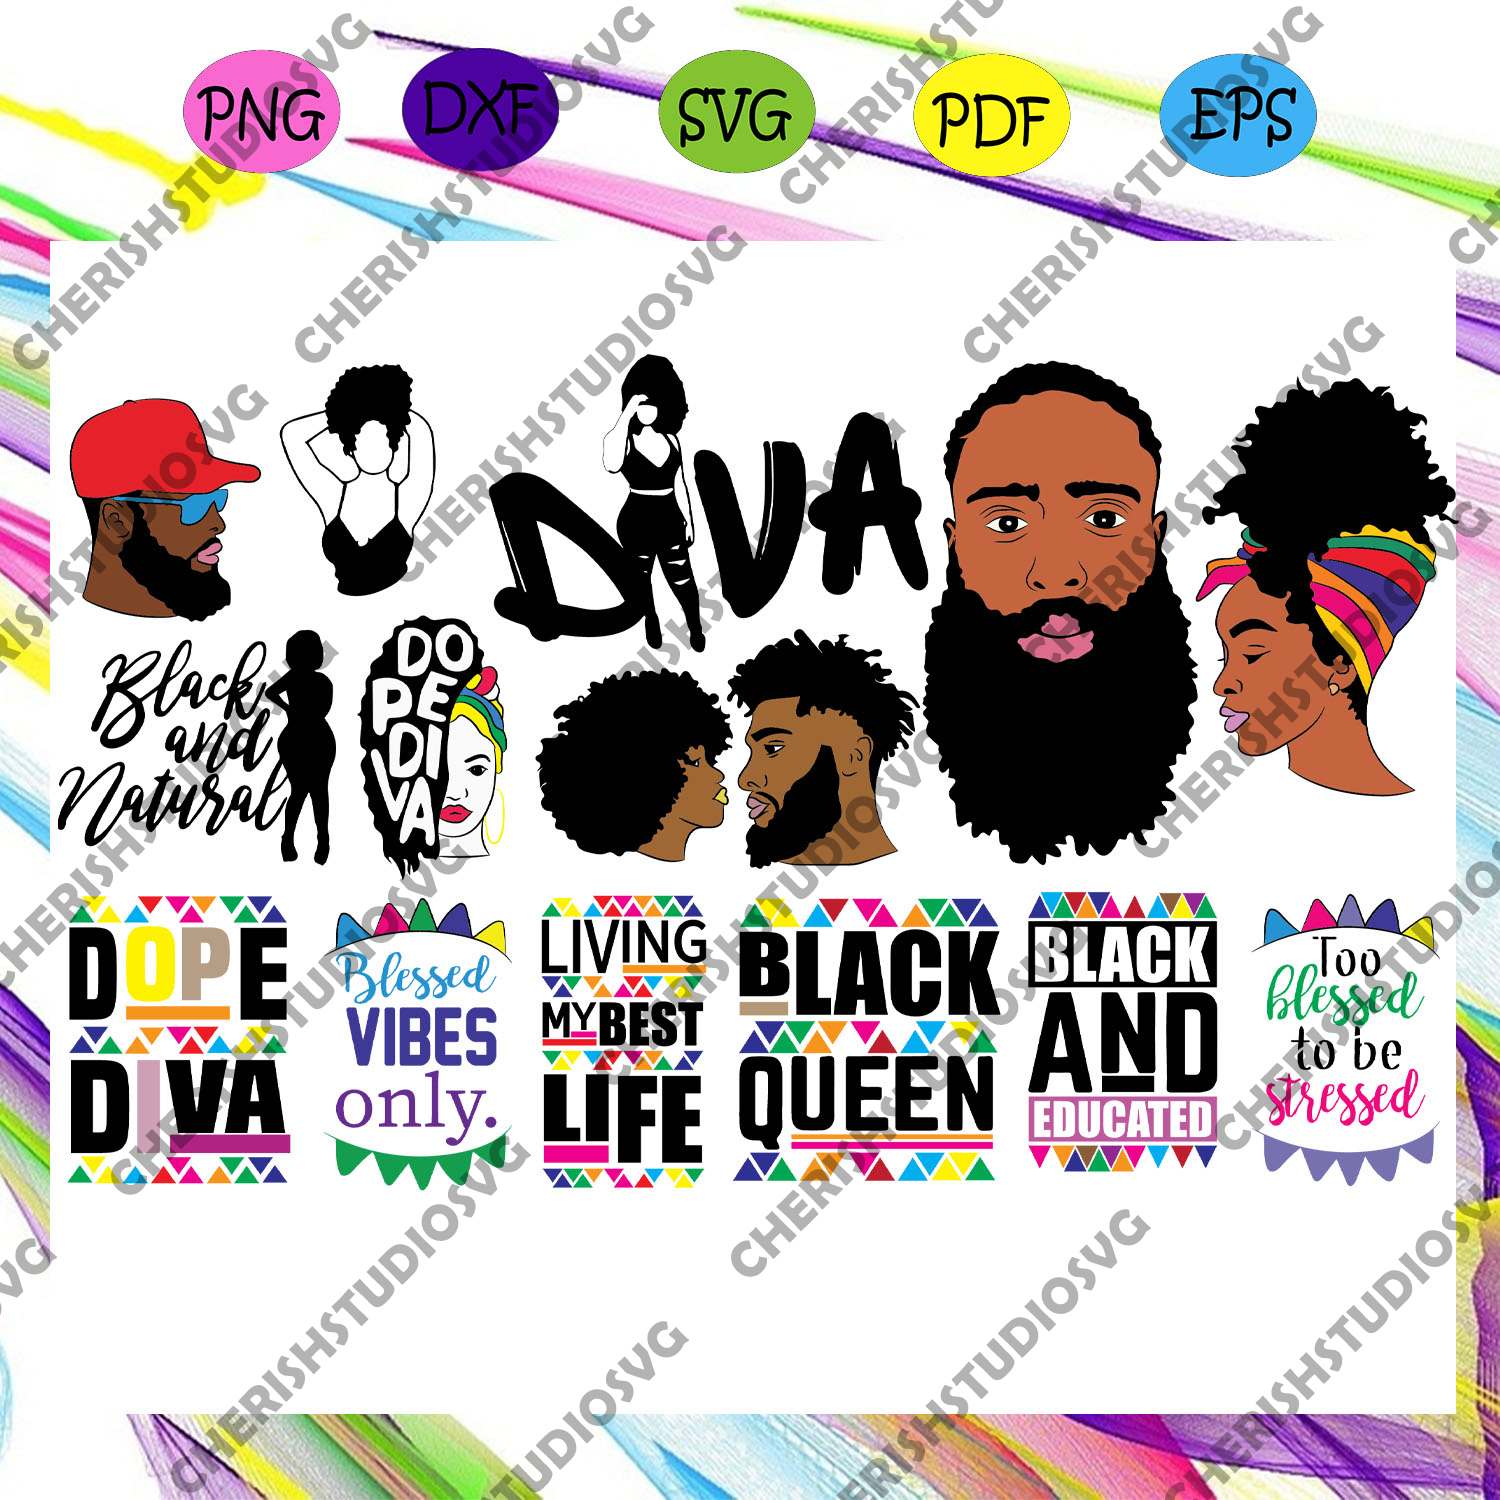 15x Afro Woman And Man Bundle Svg, Black Woman Svg, Afro Queen Svg, Dope Diva For Silhouette, Files For Cricut, SVG, DXF, EPS, PNG Instant Download